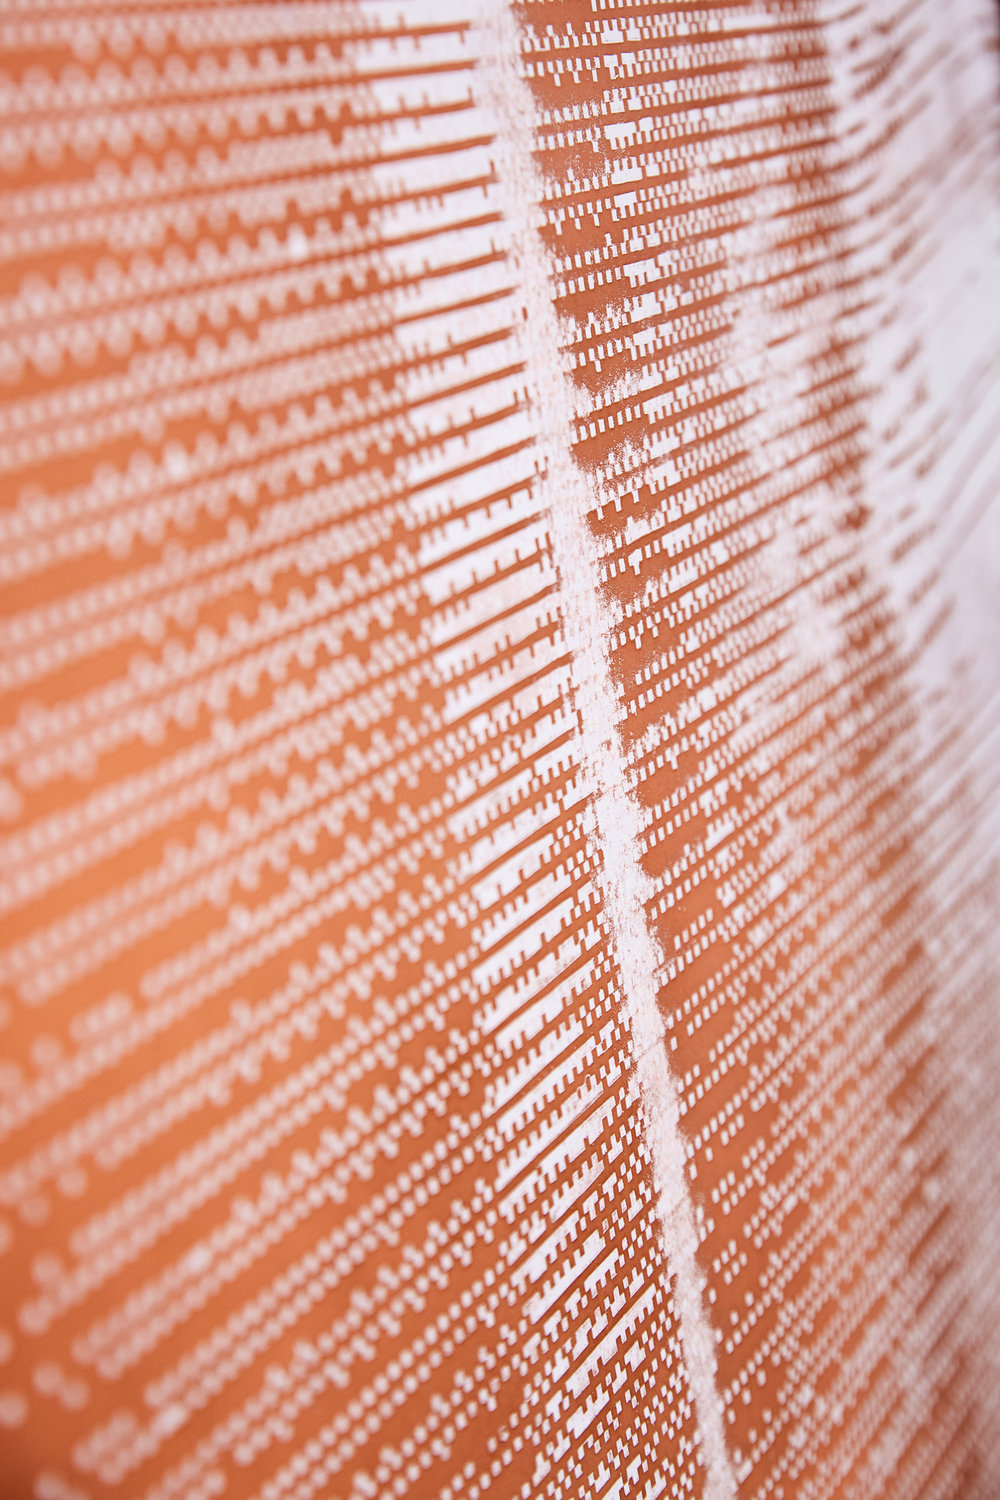 Hard Copy (Shroud) (detail)